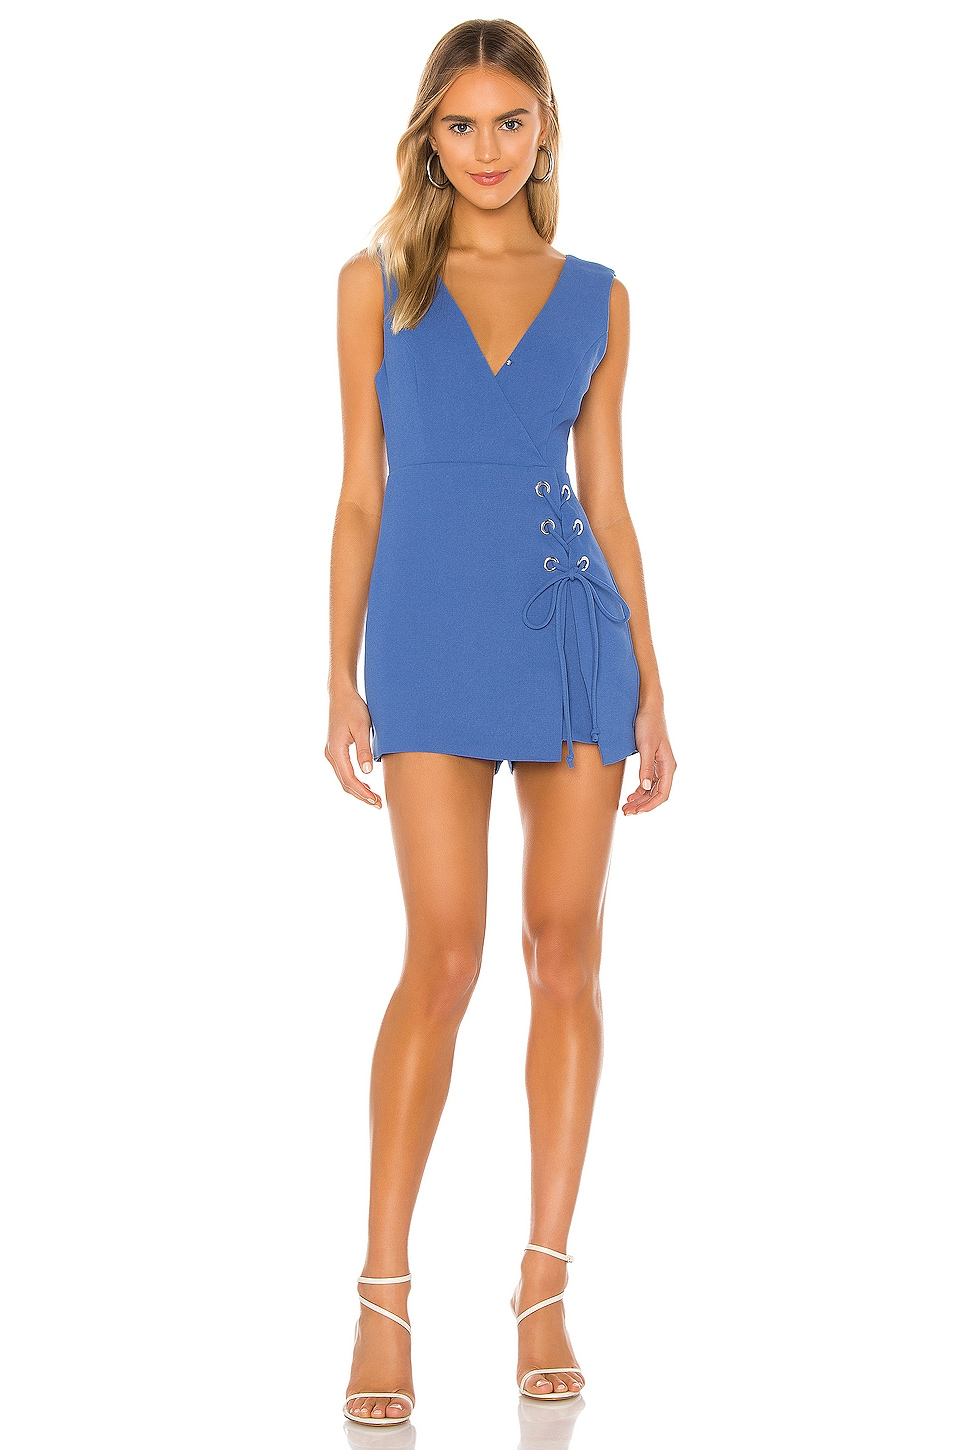 BCBGeneration Lace Up Romper in Bright Cobalt